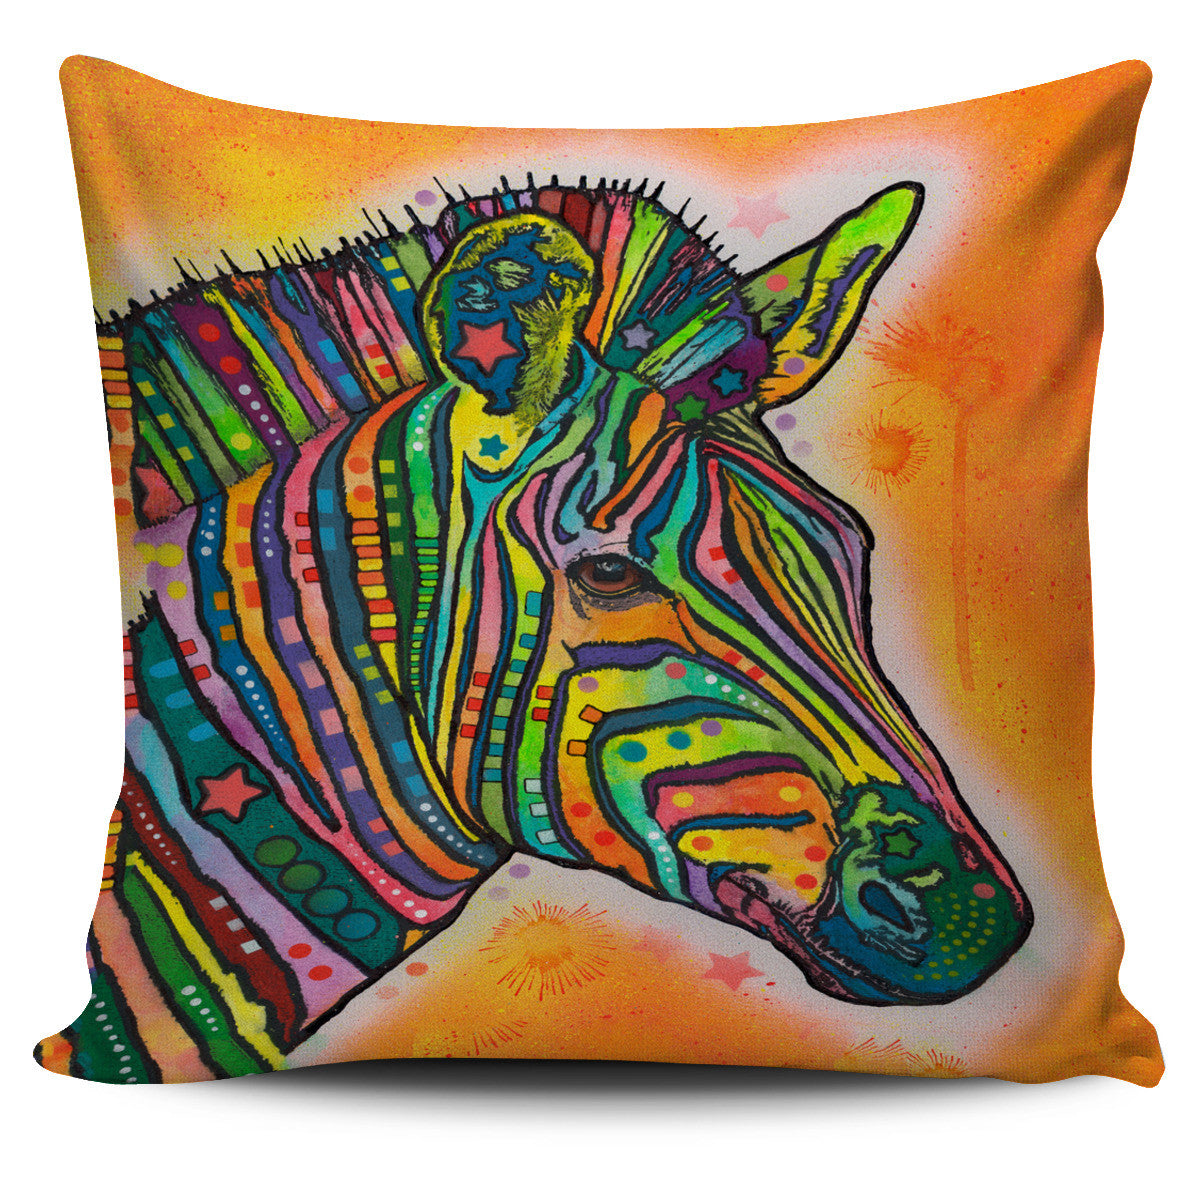 Safari Series II Pillow Covers